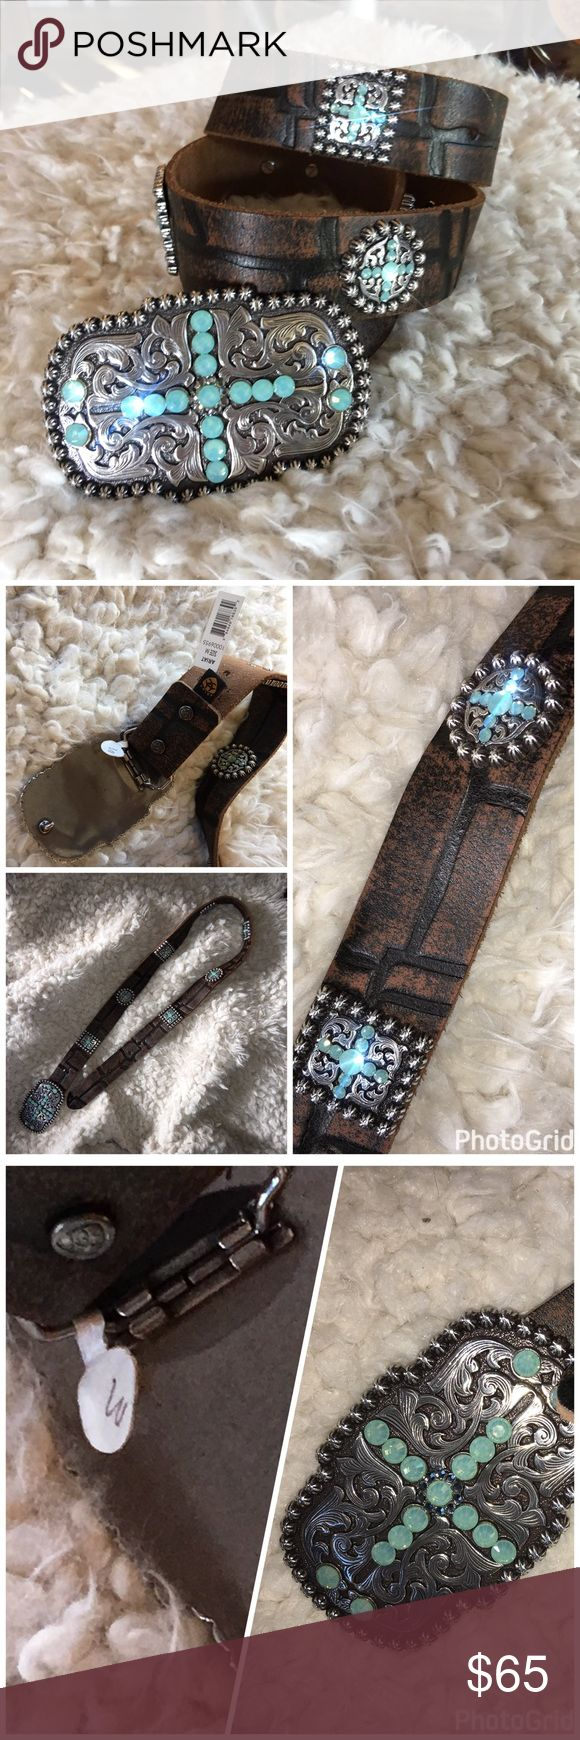 "NWT 🆕 Ariat western Blue Sunday Leather Belt This Ariat western floral design & Swarovski Crystals on the buckle gives you an original cowgirl look. The belt strap has crocodile print & Swarovski Crystals on conchos. The removable buckle lets you customize. Sz= M⭐️Total leather L 39"" x 1.5"" W  Western floral scroll work buckle w/blue Swarovski Crystals in a cross pattern Matching round & square conchos on belt. Distressed croc print leather strap. Has few scratches that are were the wholes…"